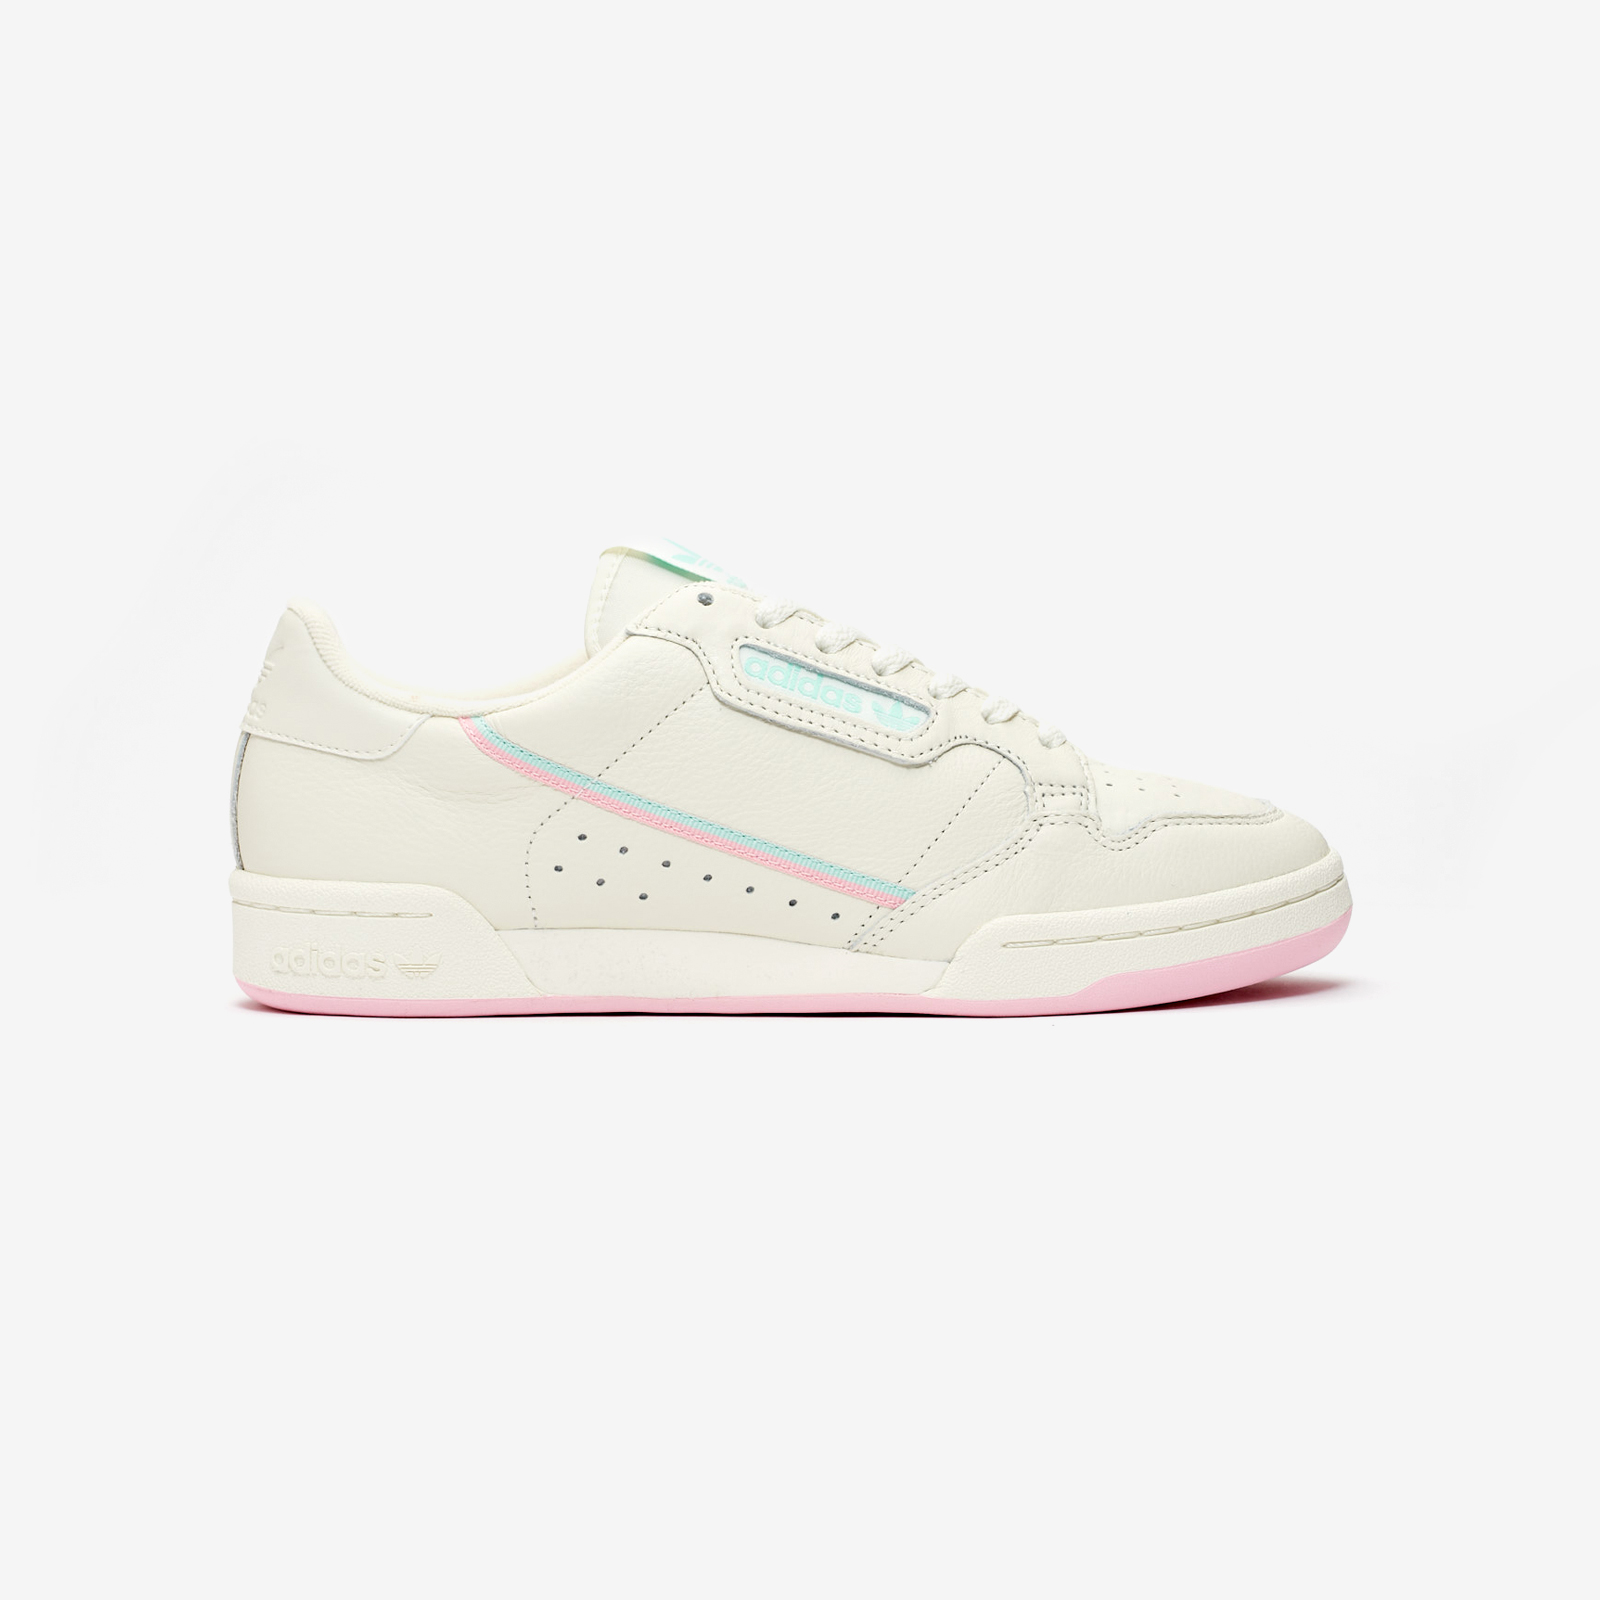 adidas originals CONTINENTAL 80 off whitetrue pinkclear